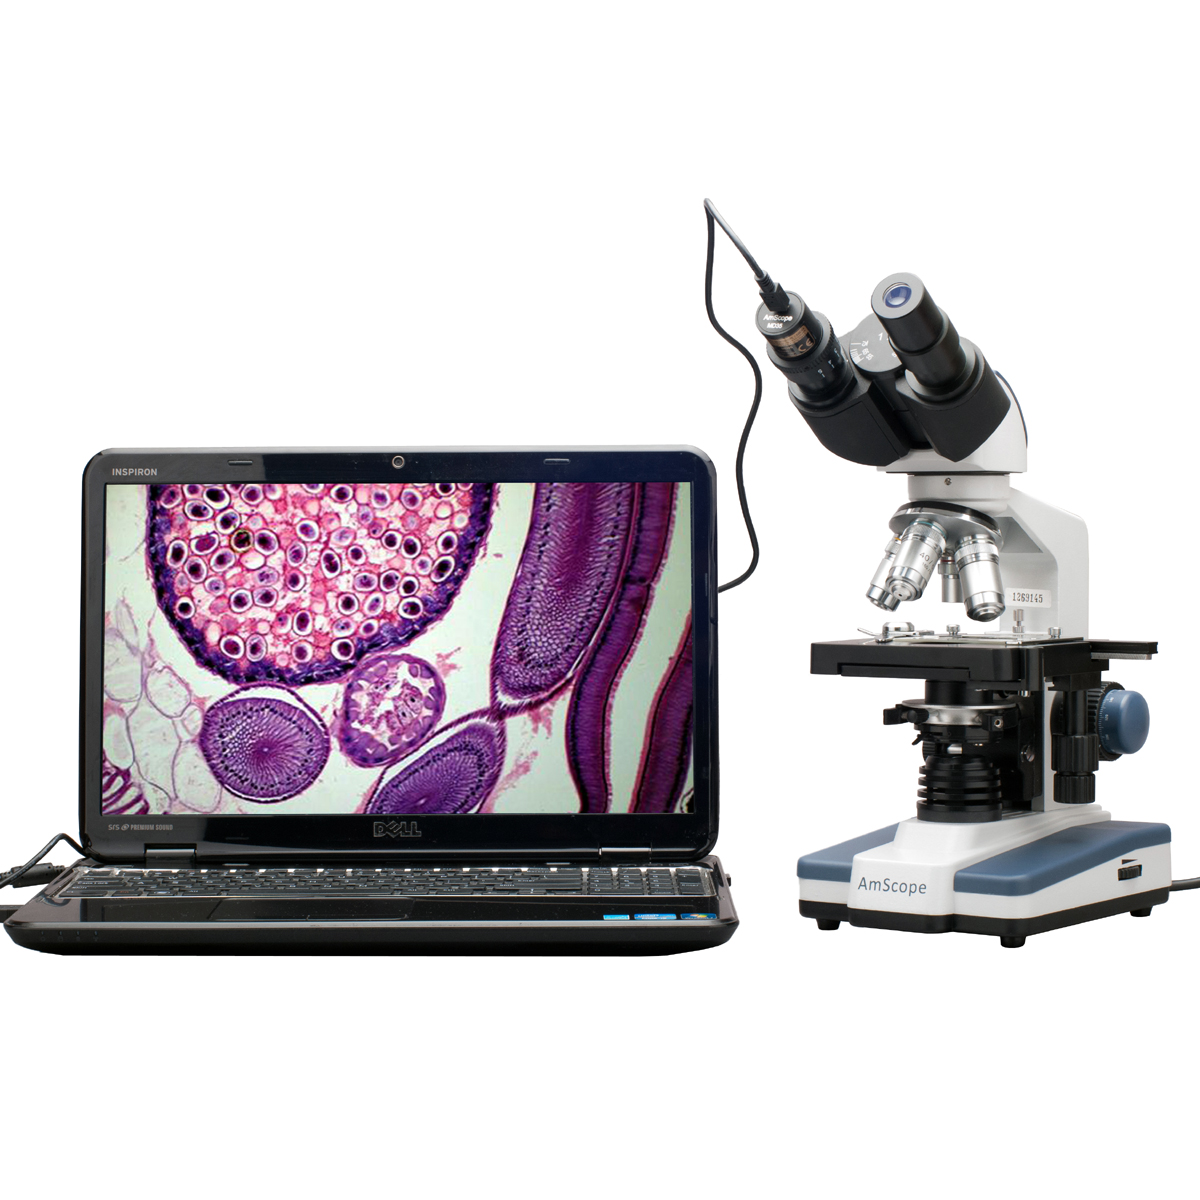 AmScope LED Digital Binocular Microscope